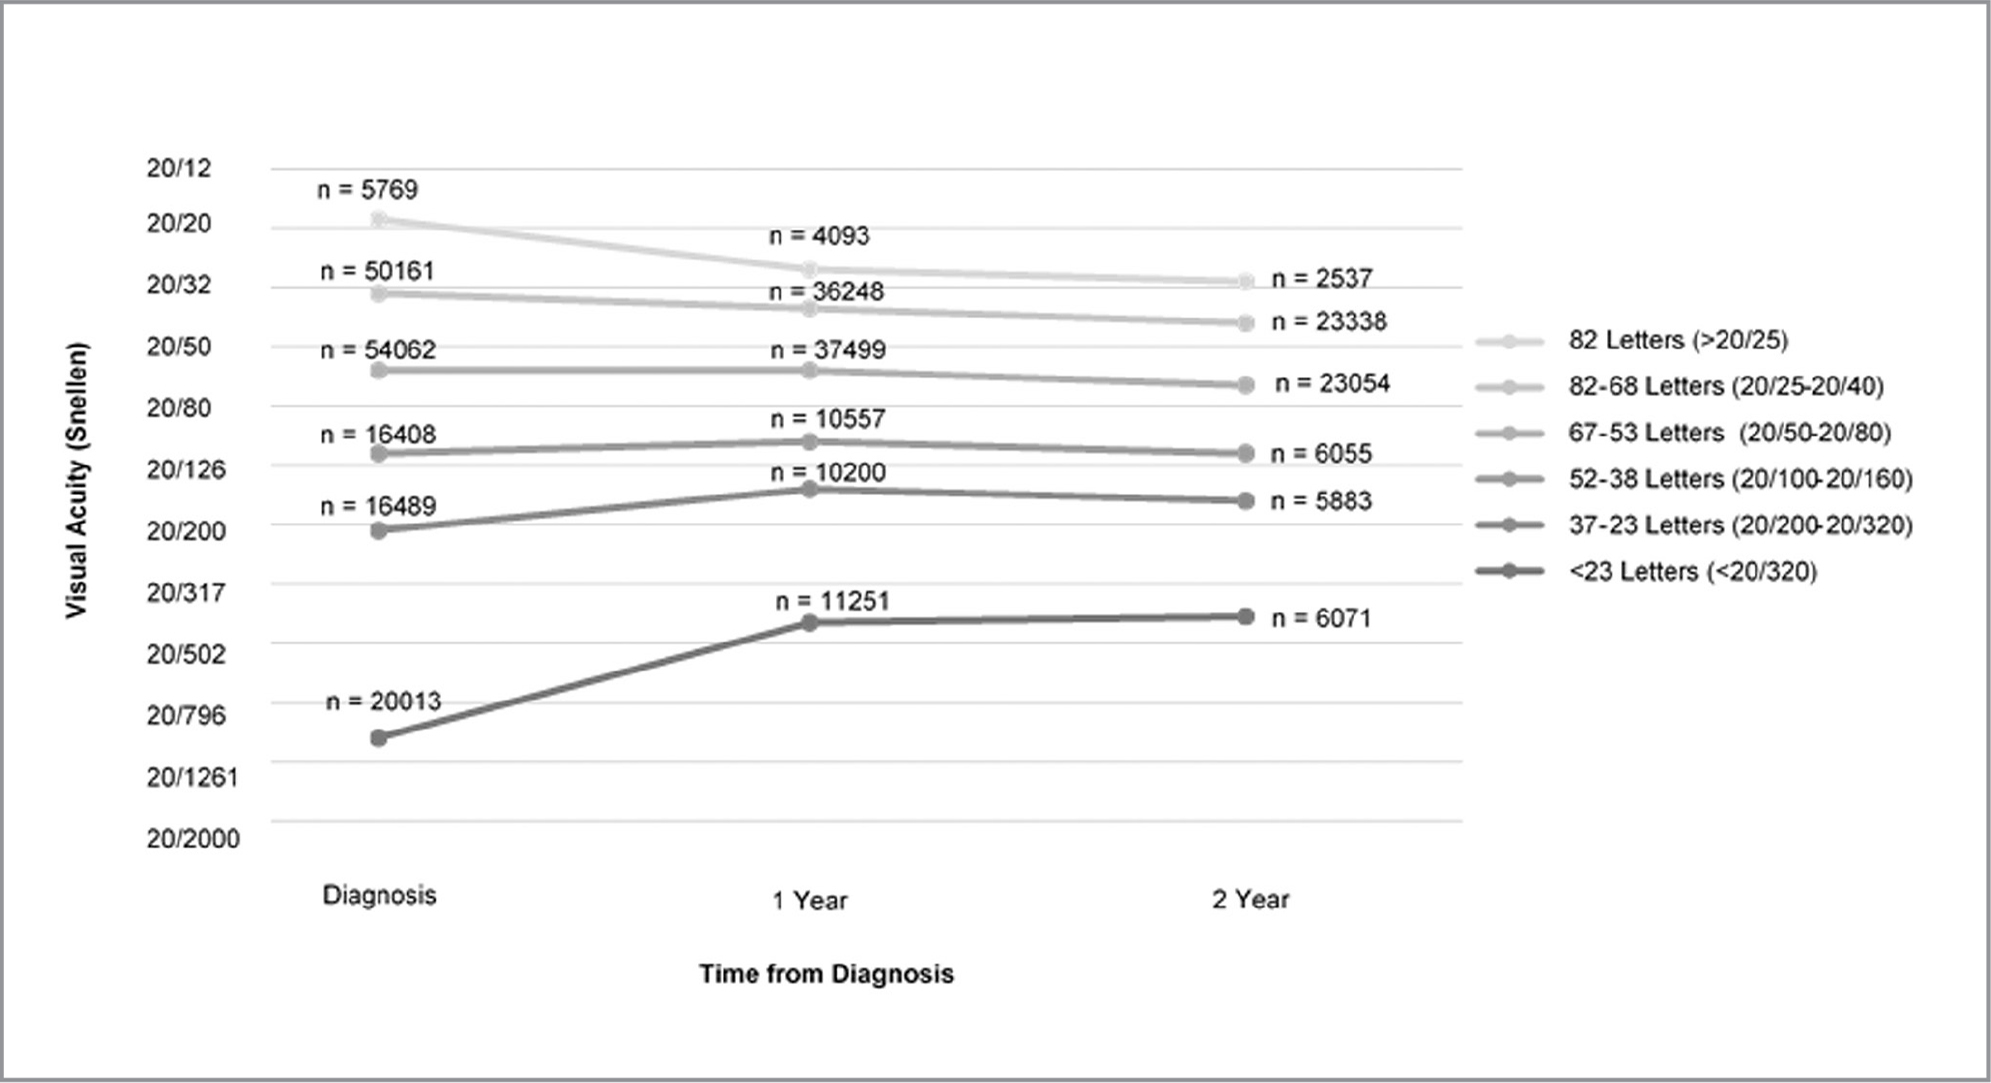 Baseline, 1-year, and 2-year visual acuity after neovascular age-related macular degeneration diagnosis.